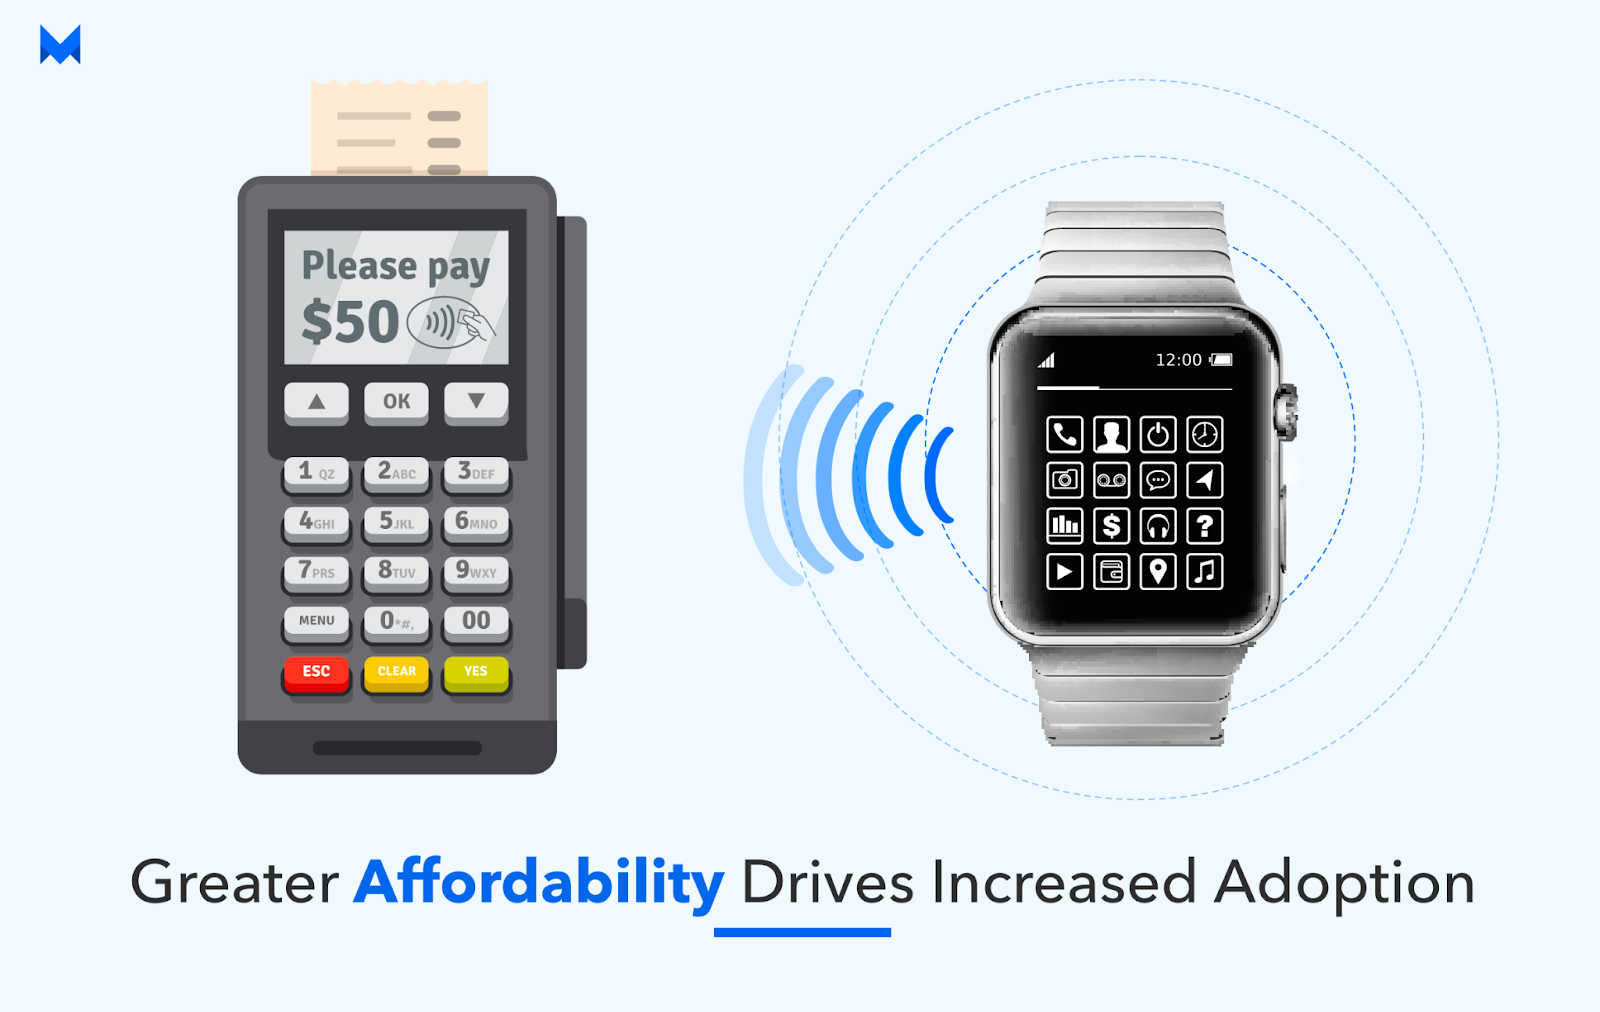 Greater Affordability Drives Increased Adoption